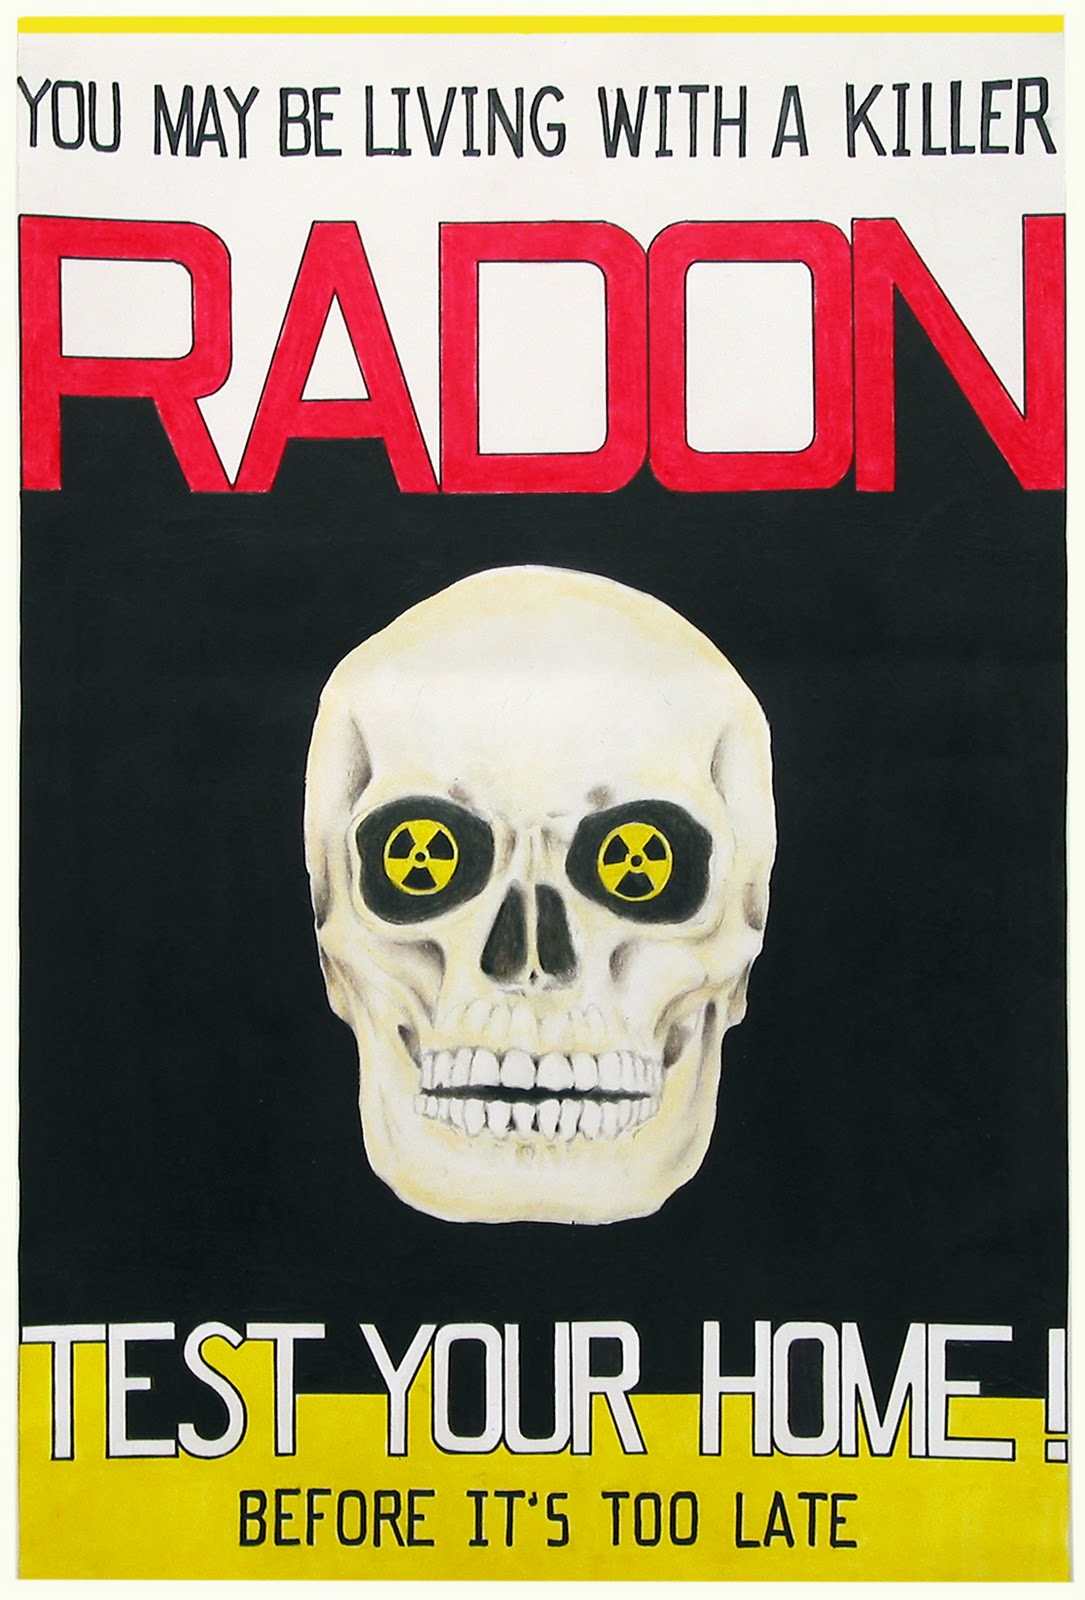 for more information on radon